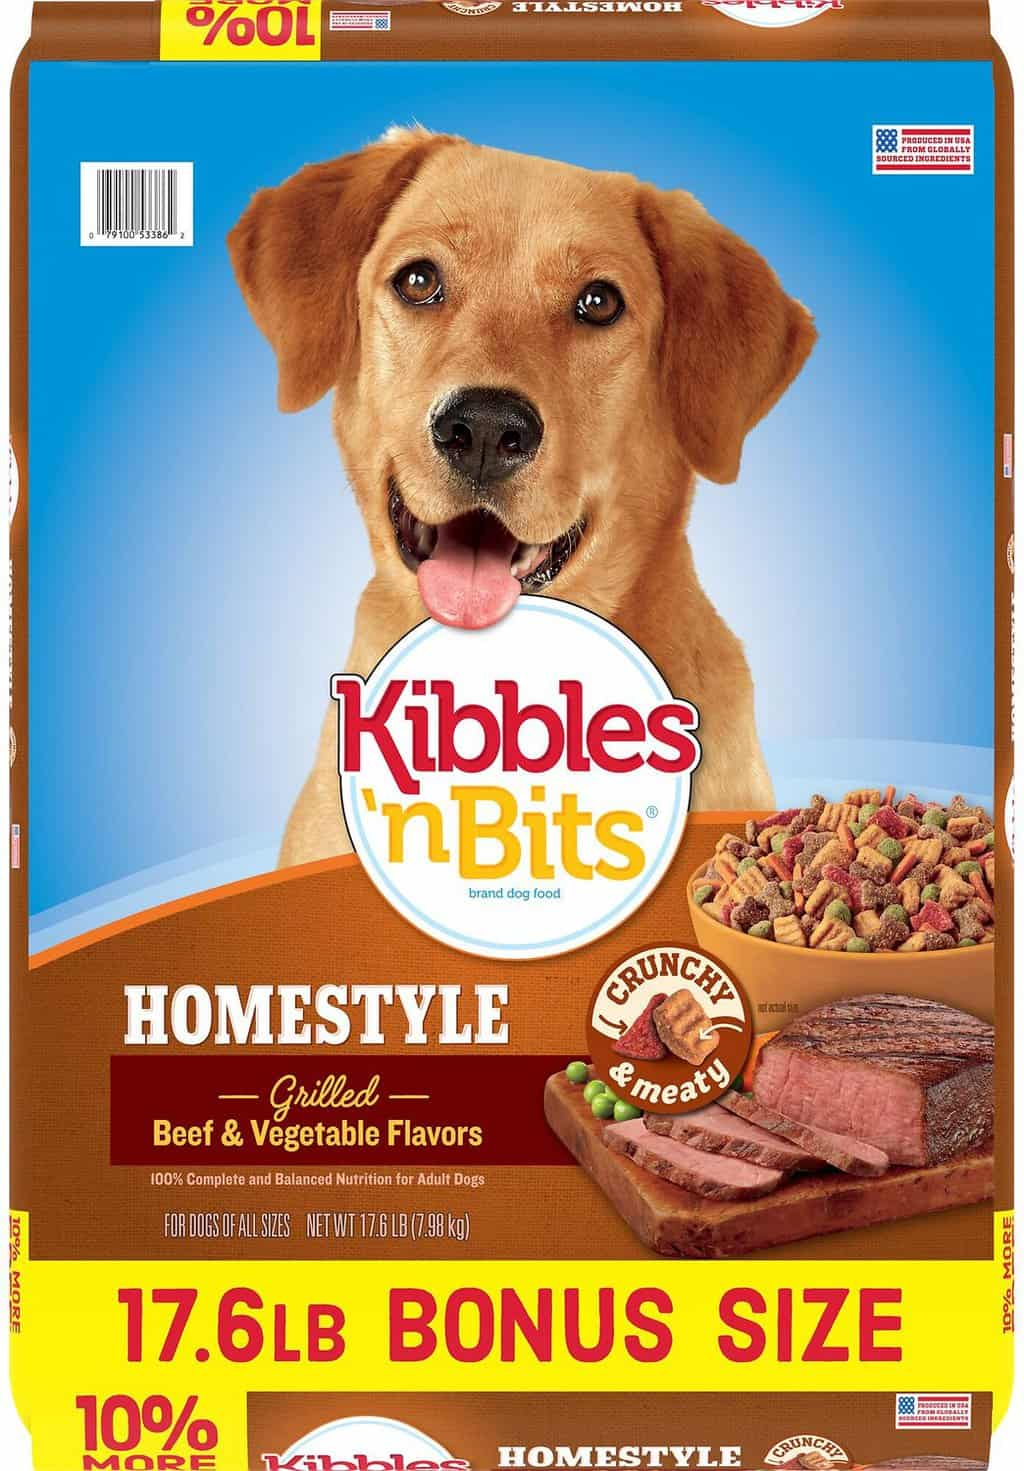 Kibbles 'n Bits Dog Food Review 2021: Is It Good or Bad? 12